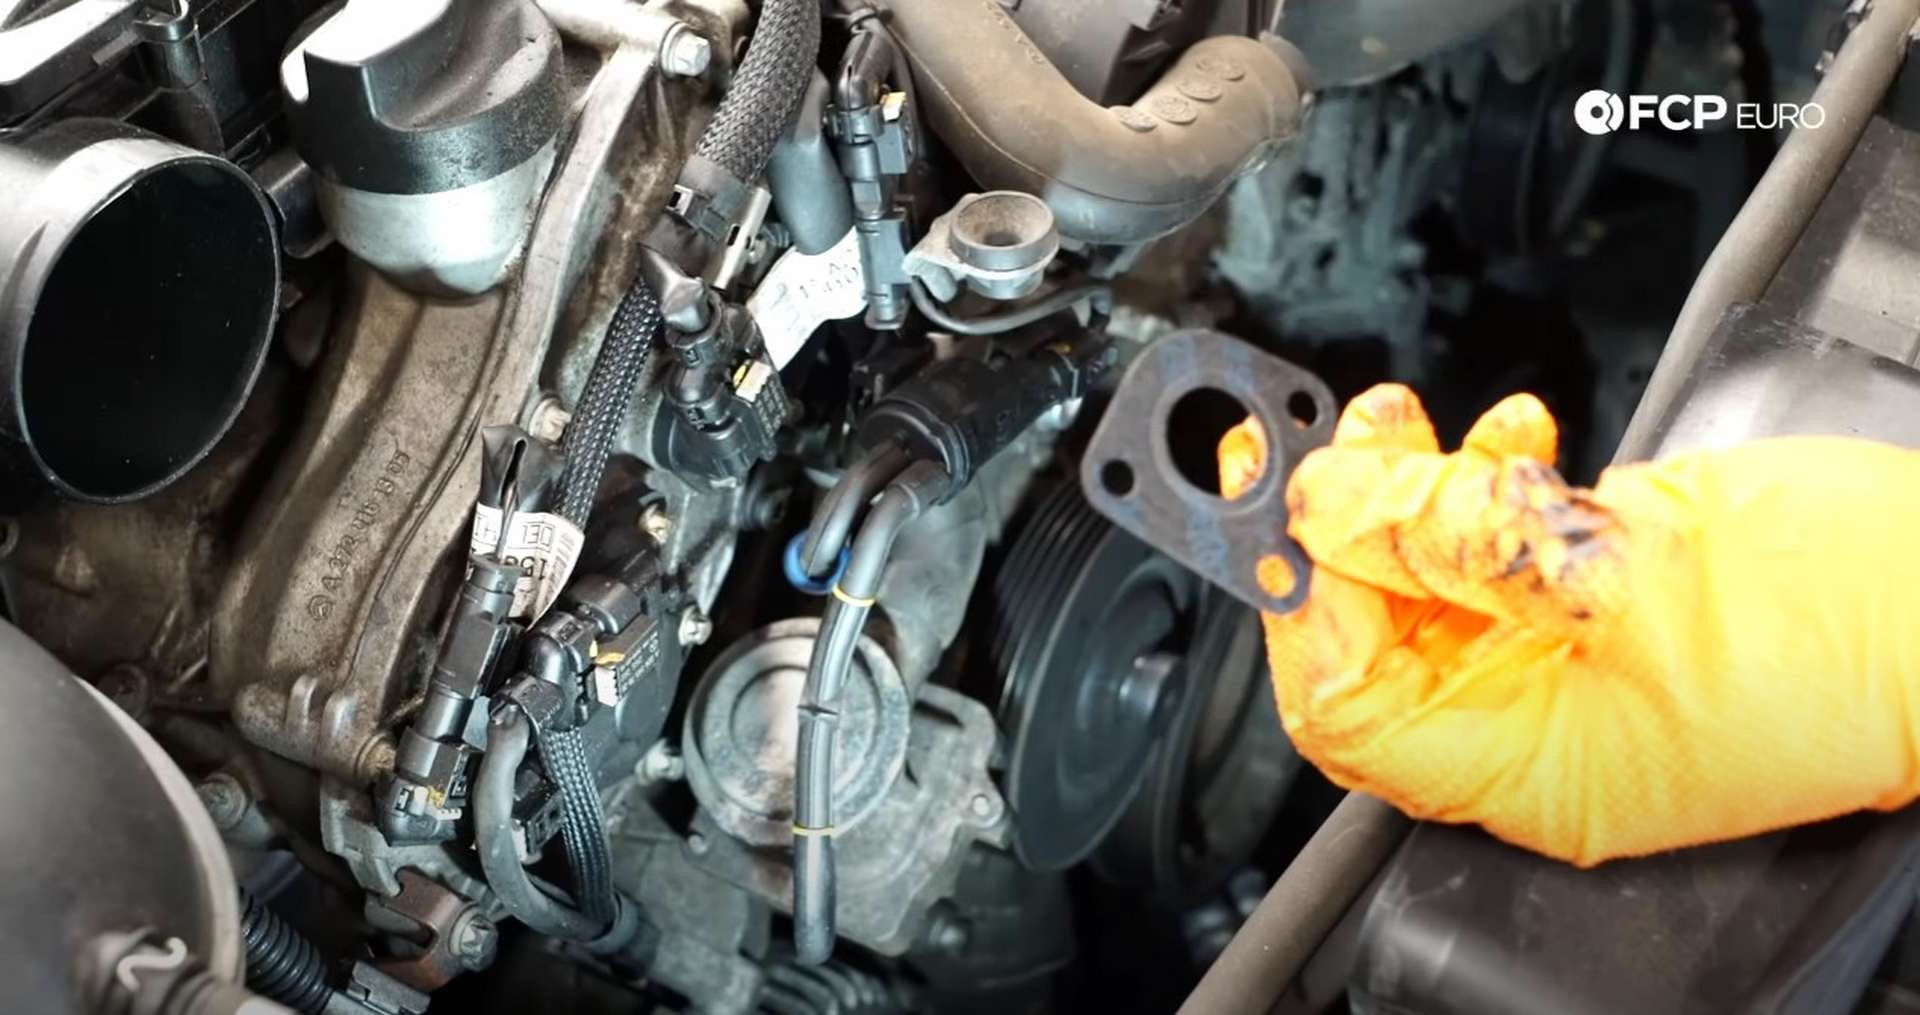 DIY Mercedes W212/204 Alternator and Drive Belt Replacement showing the positioning of the combi valve bolts